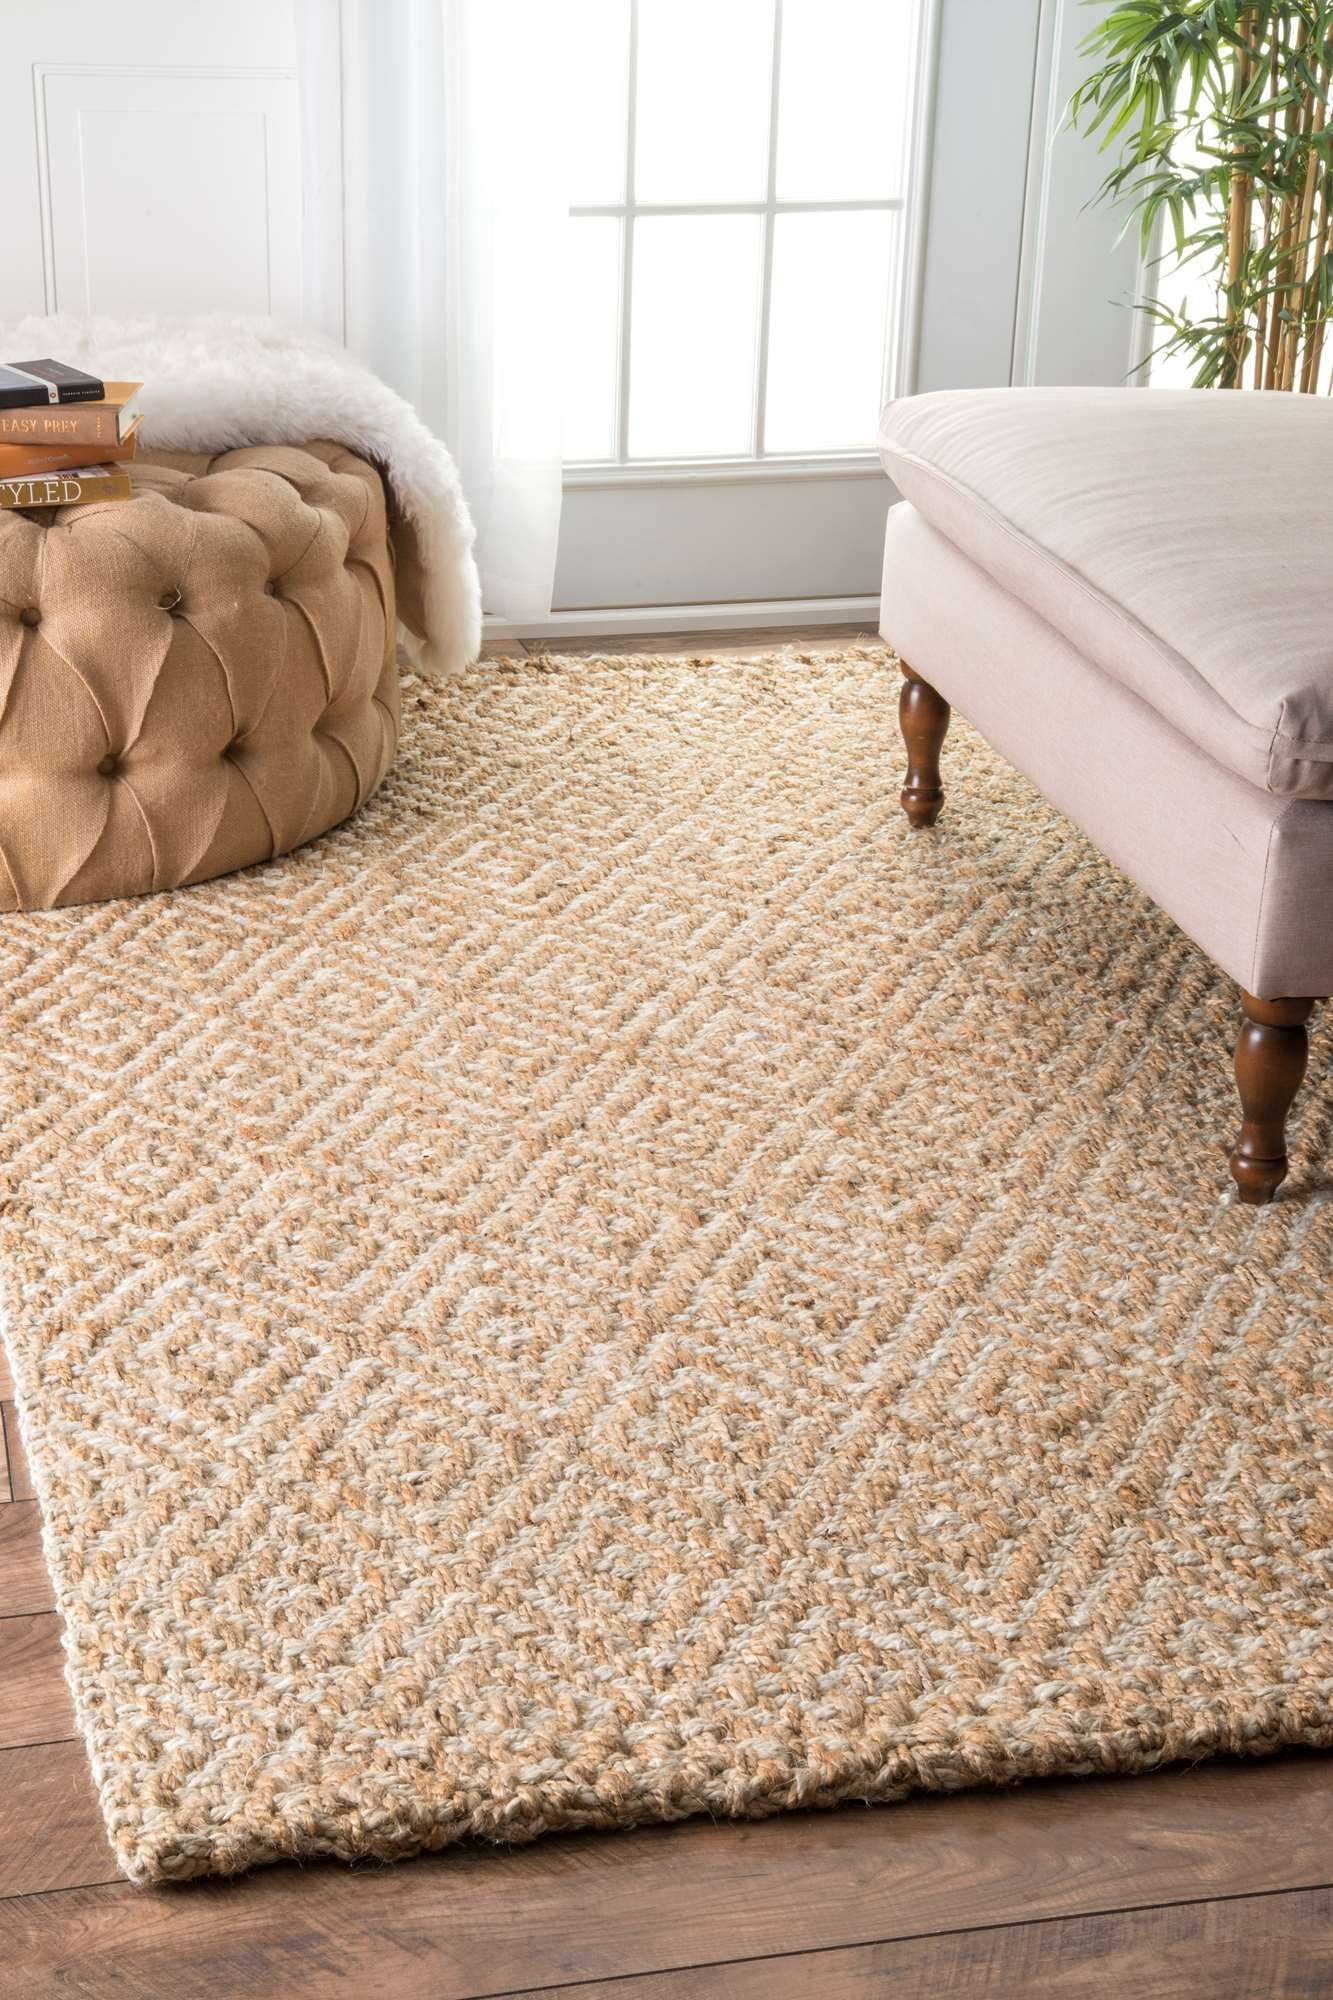 Furry Rugs for Bedroom Best Of Rugs Usa area Rugs In Many Styles Including Contemporary